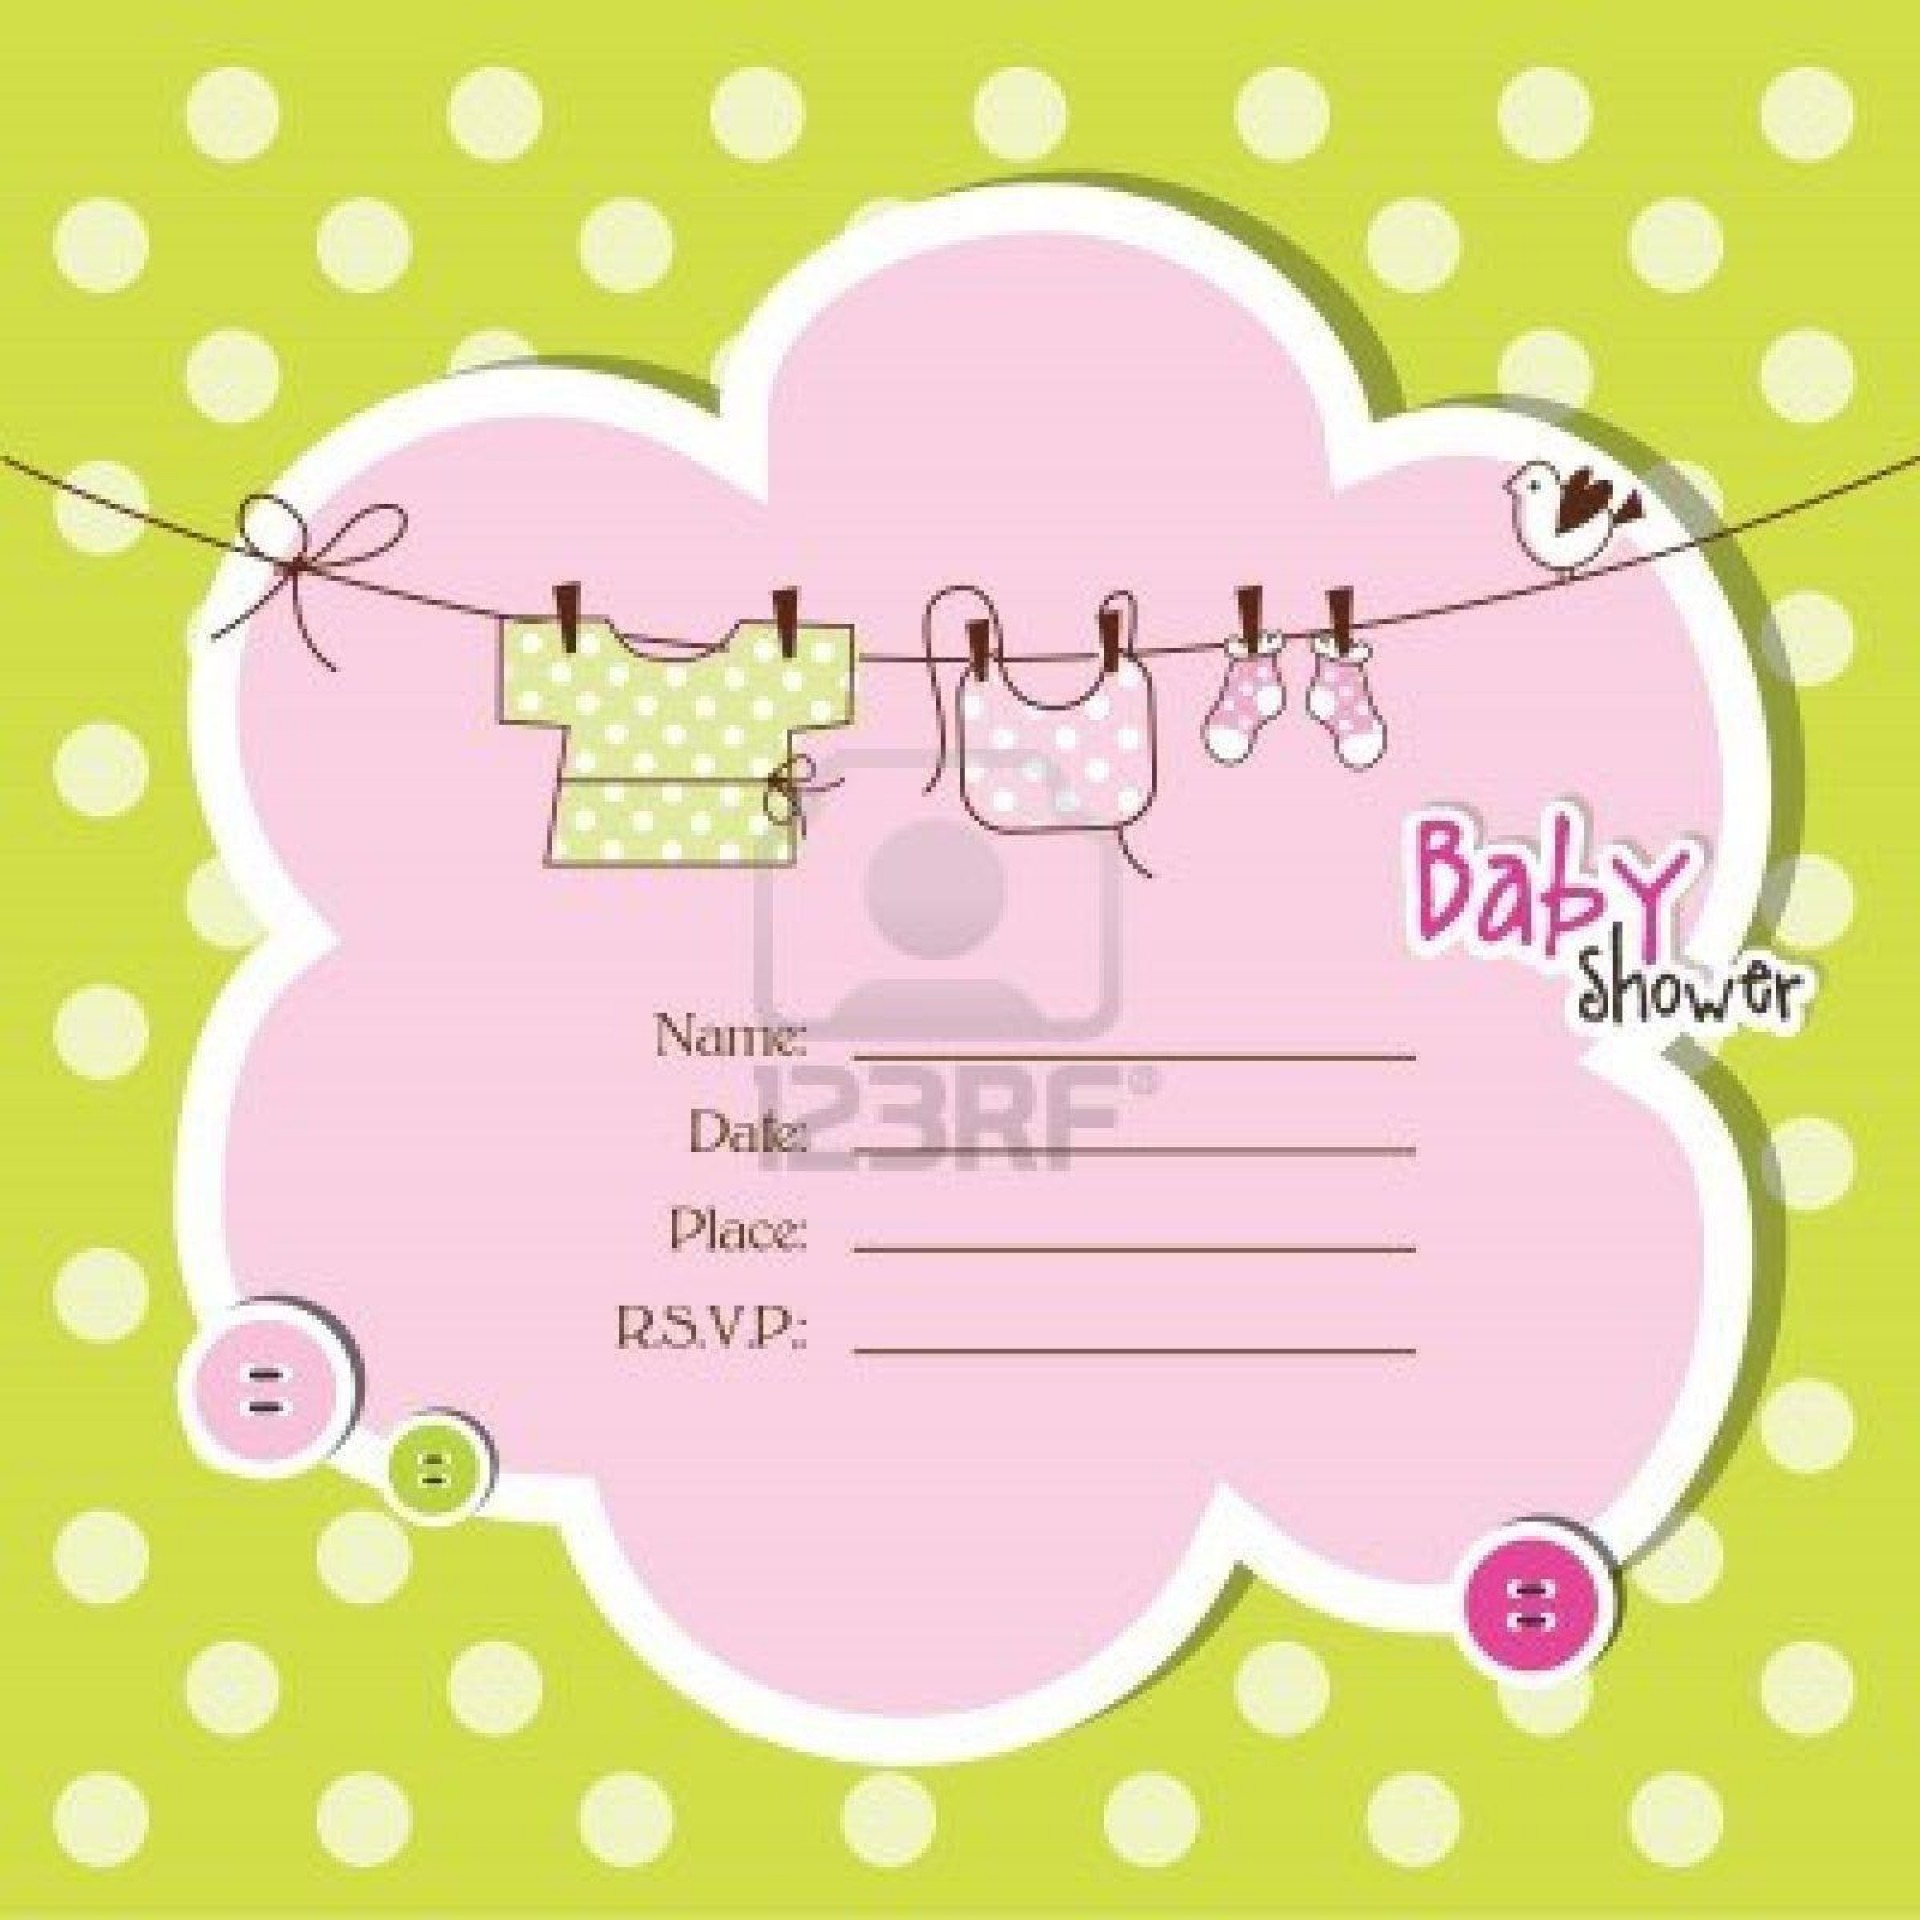 008 Magnificent Baby Shower Invitation Template Microsoft Word Highest Clarity  Free Editable1920